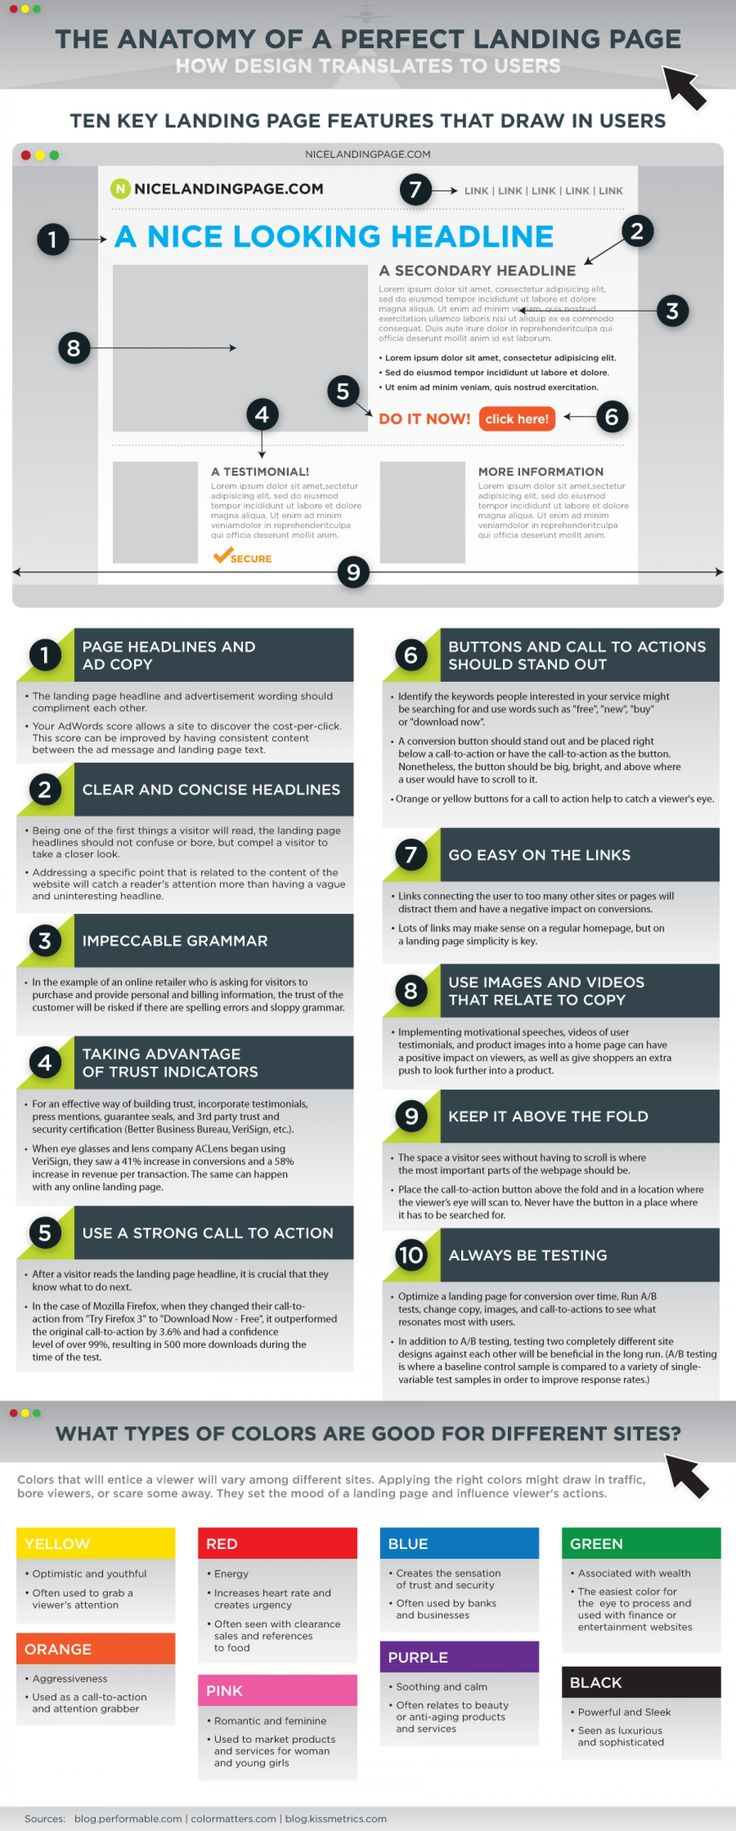 Anatomy of a Perfect Landing Page Infographic